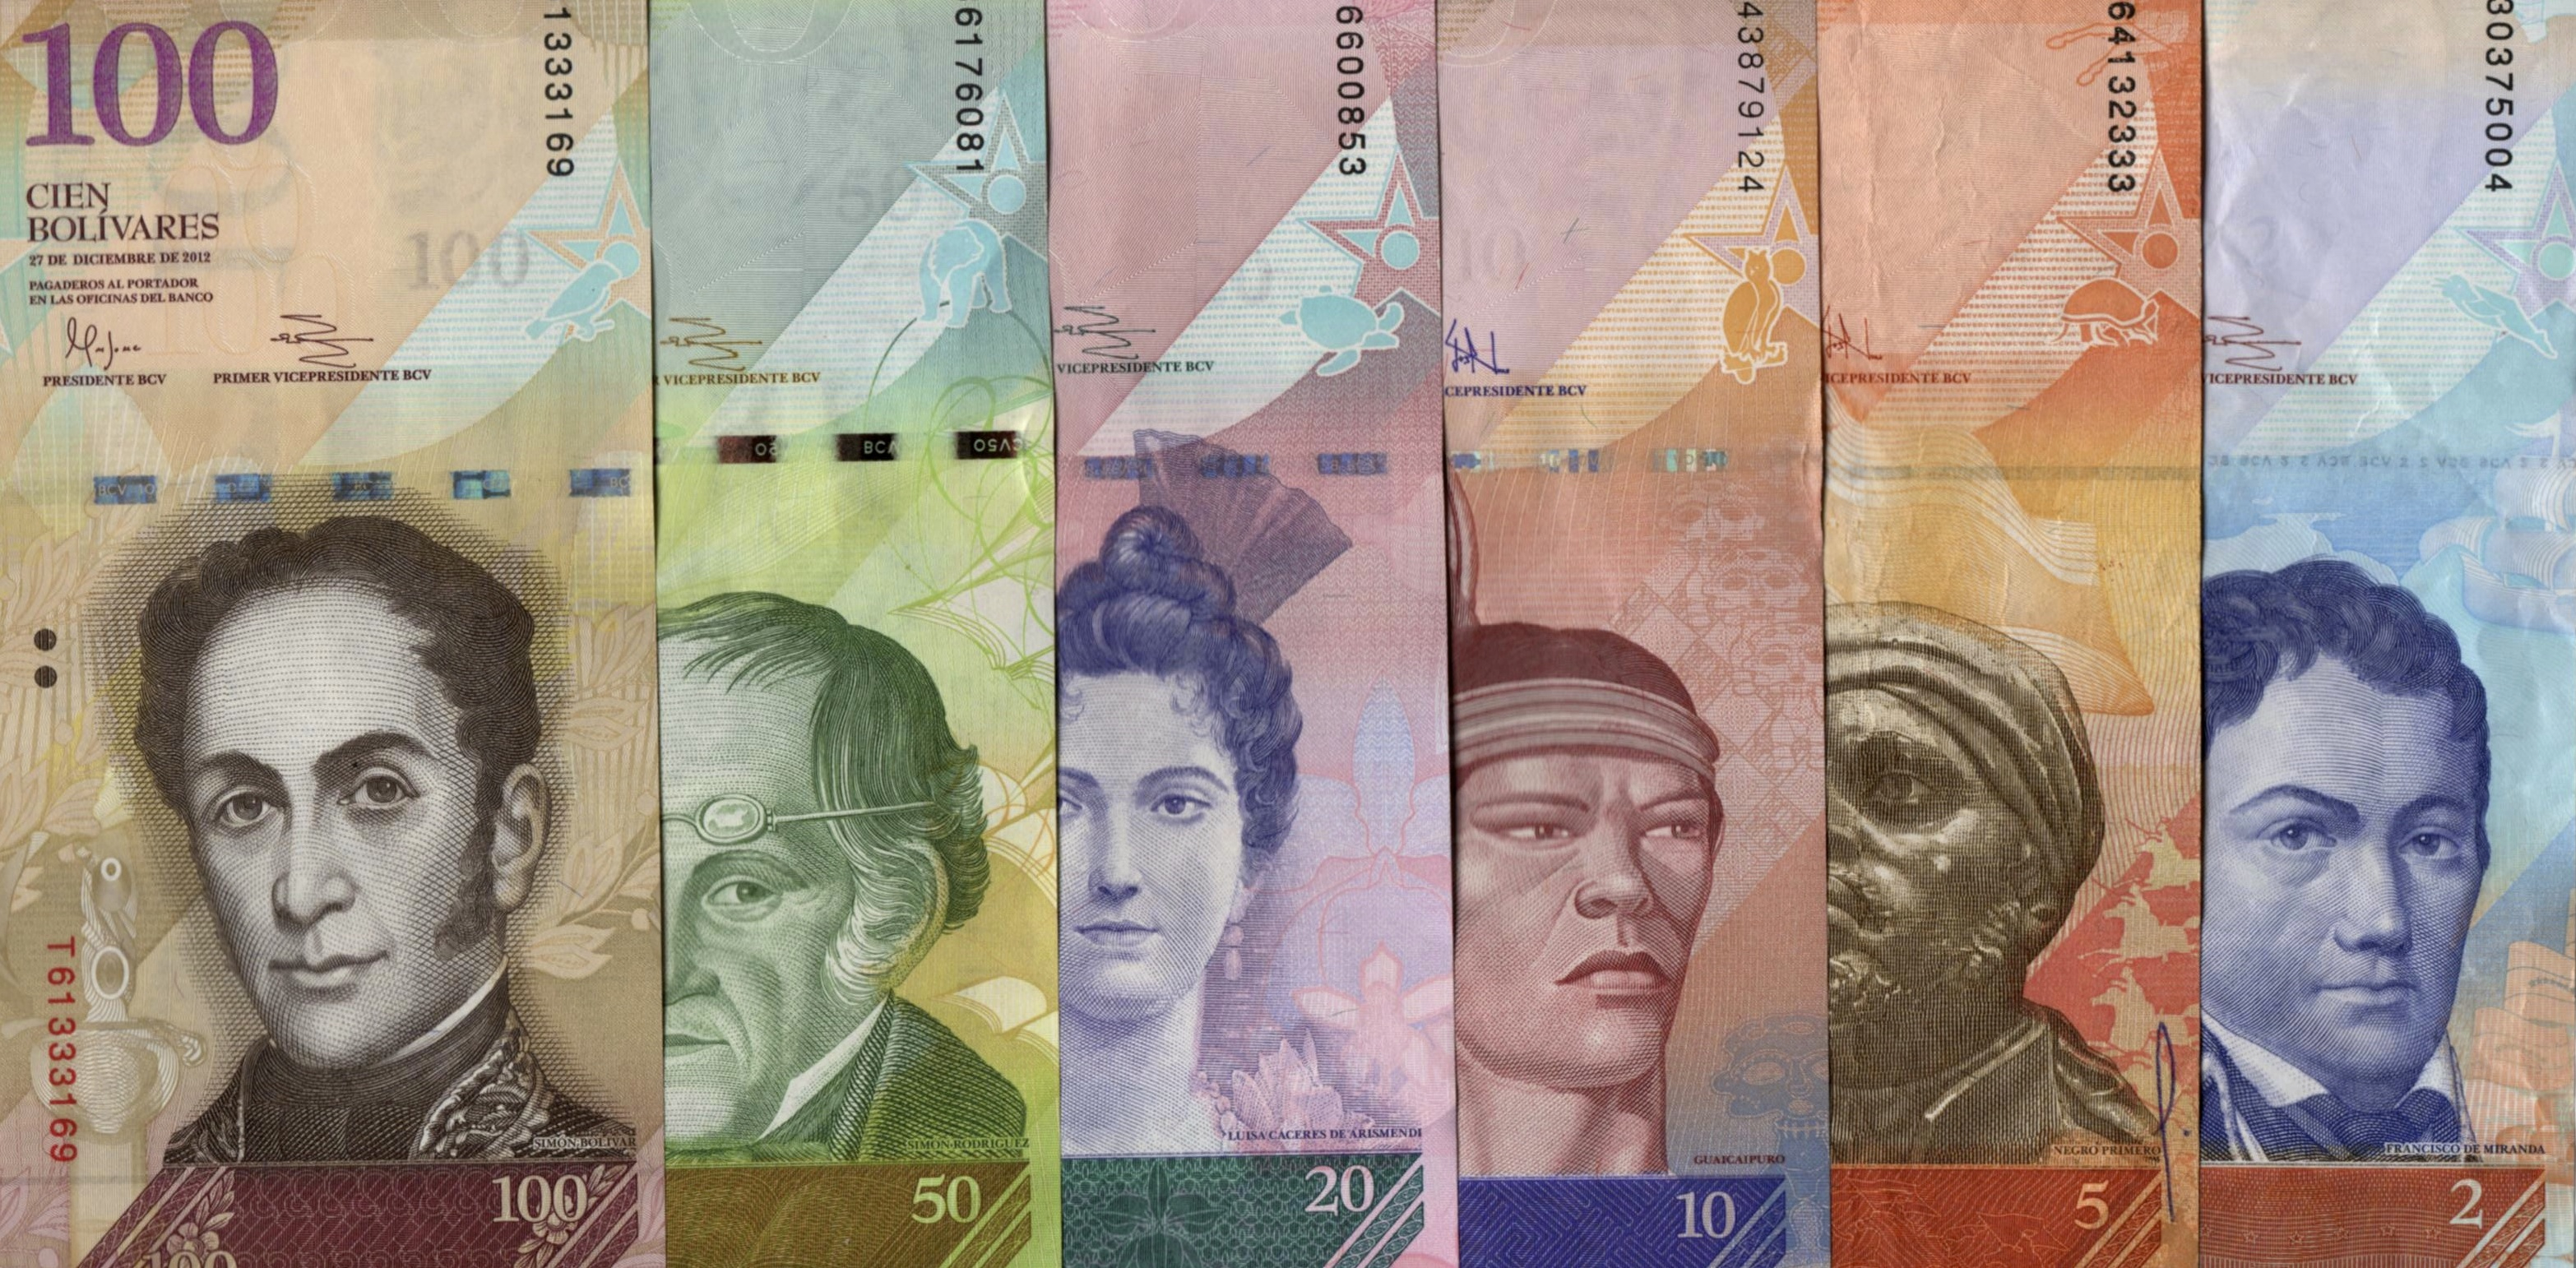 Venezuelan Bolívar's Strongest Bill Now Fetches 47 US Cents